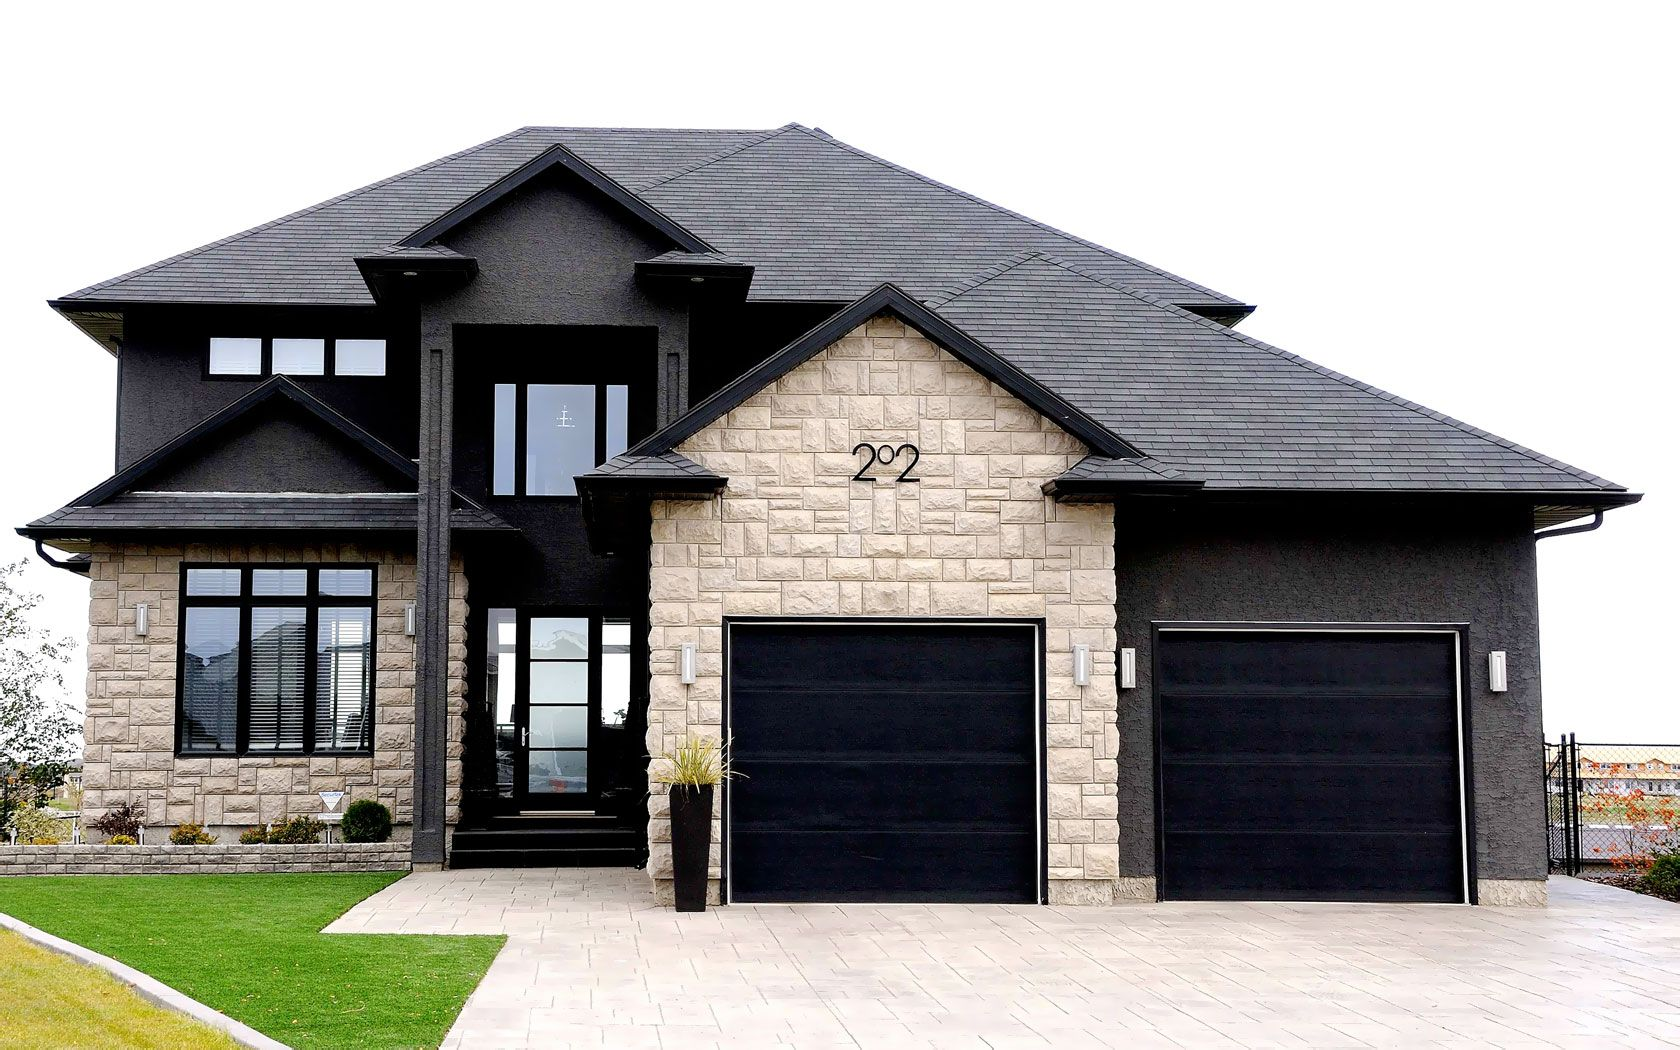 black windows exterior stone exterior black house house design house